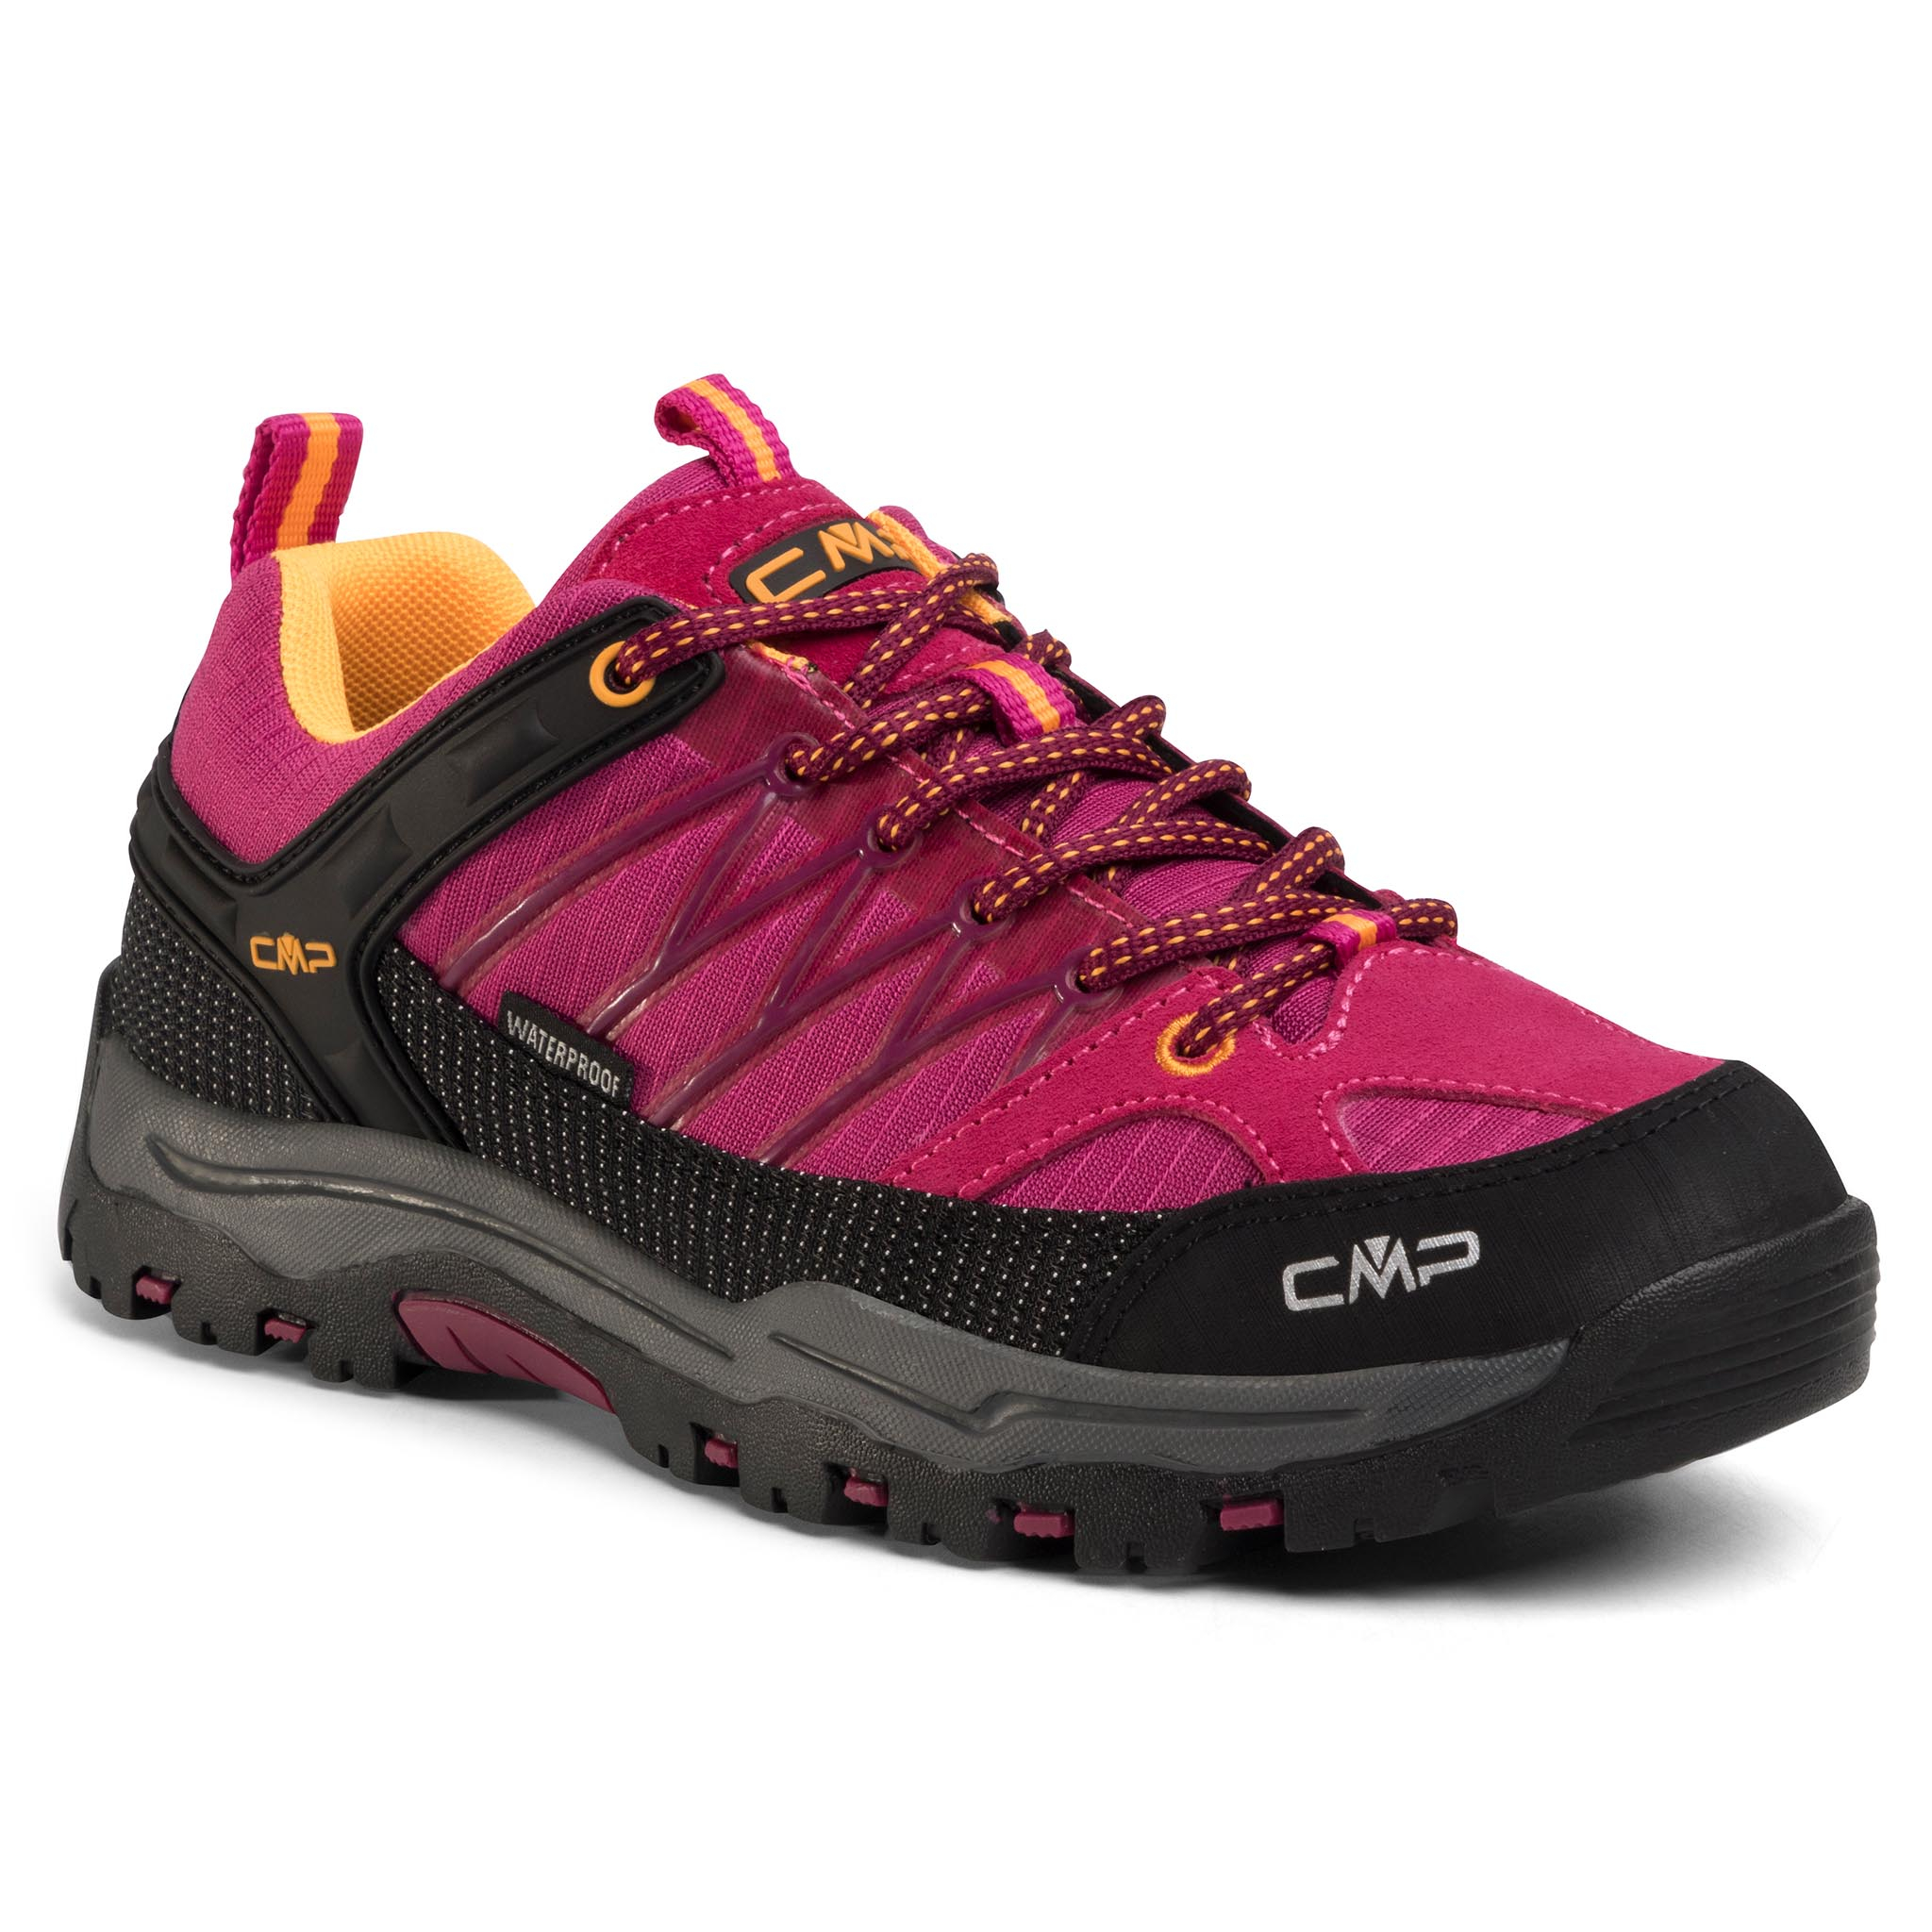 Trekkings Cmp - Kids Rigel Low Trekking Shoes Wp 3q54554j Bouganville/Goji 06he imagine epantofi.ro 2021